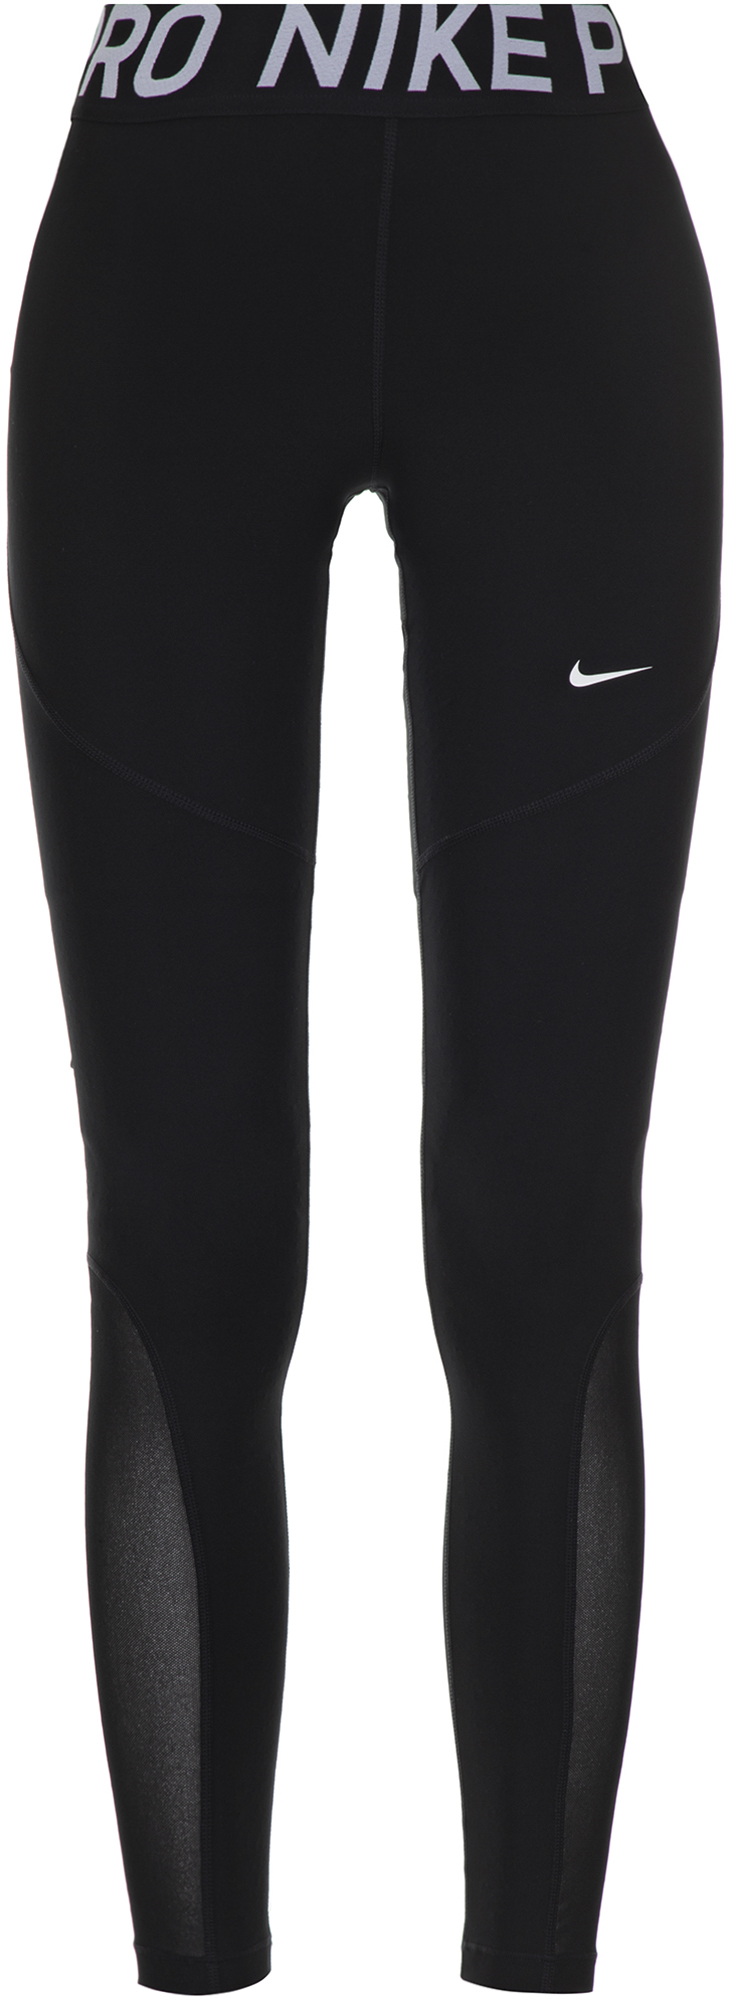 Nike Легинсы женские Nike Pro, размер 48-50 nike nike youth pro hyperwarm compression tights